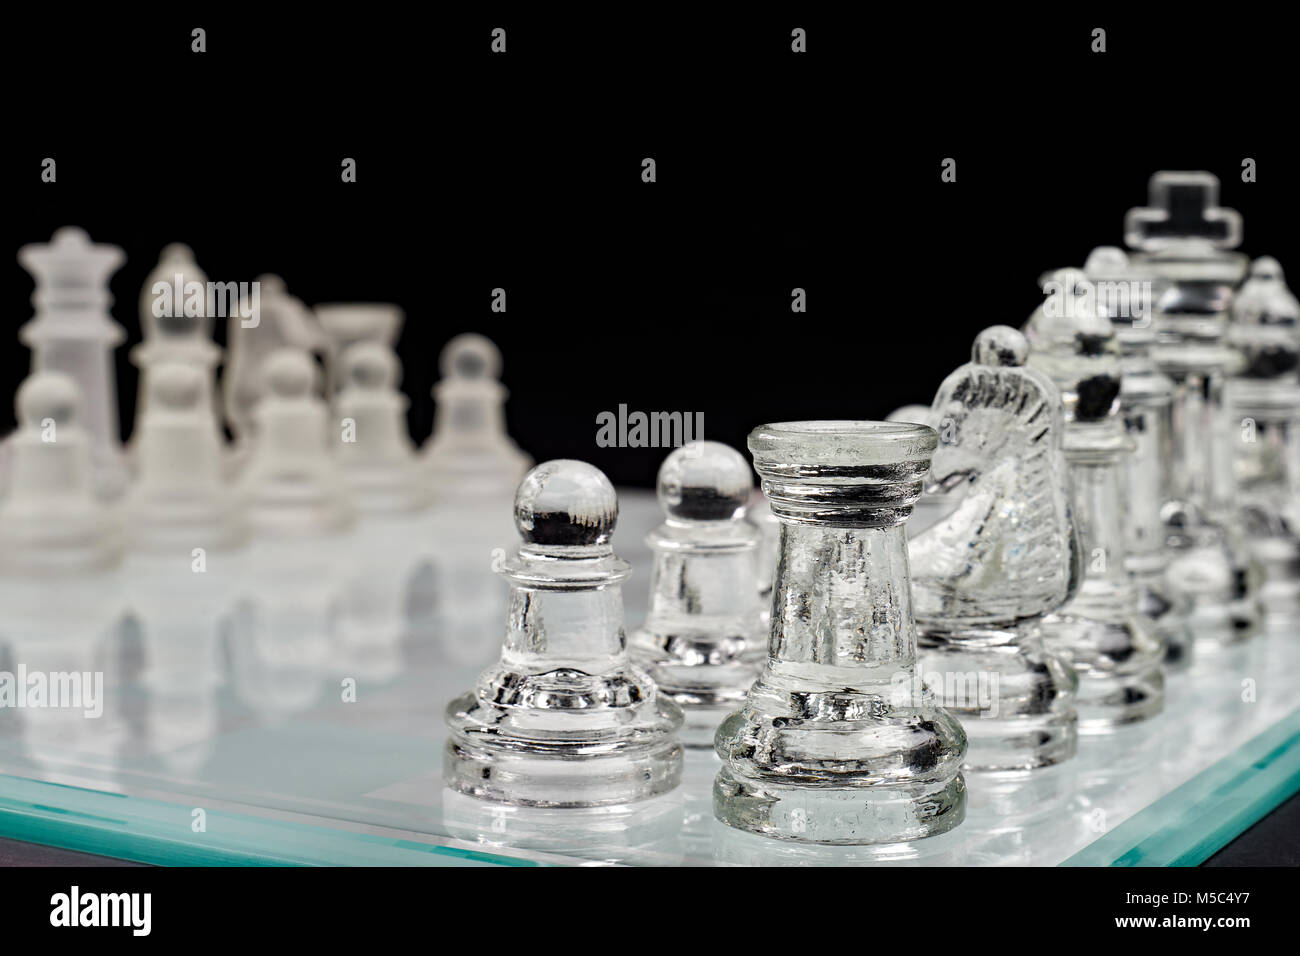 Chess, glass chessboard with pawns on a black background - Stock Image